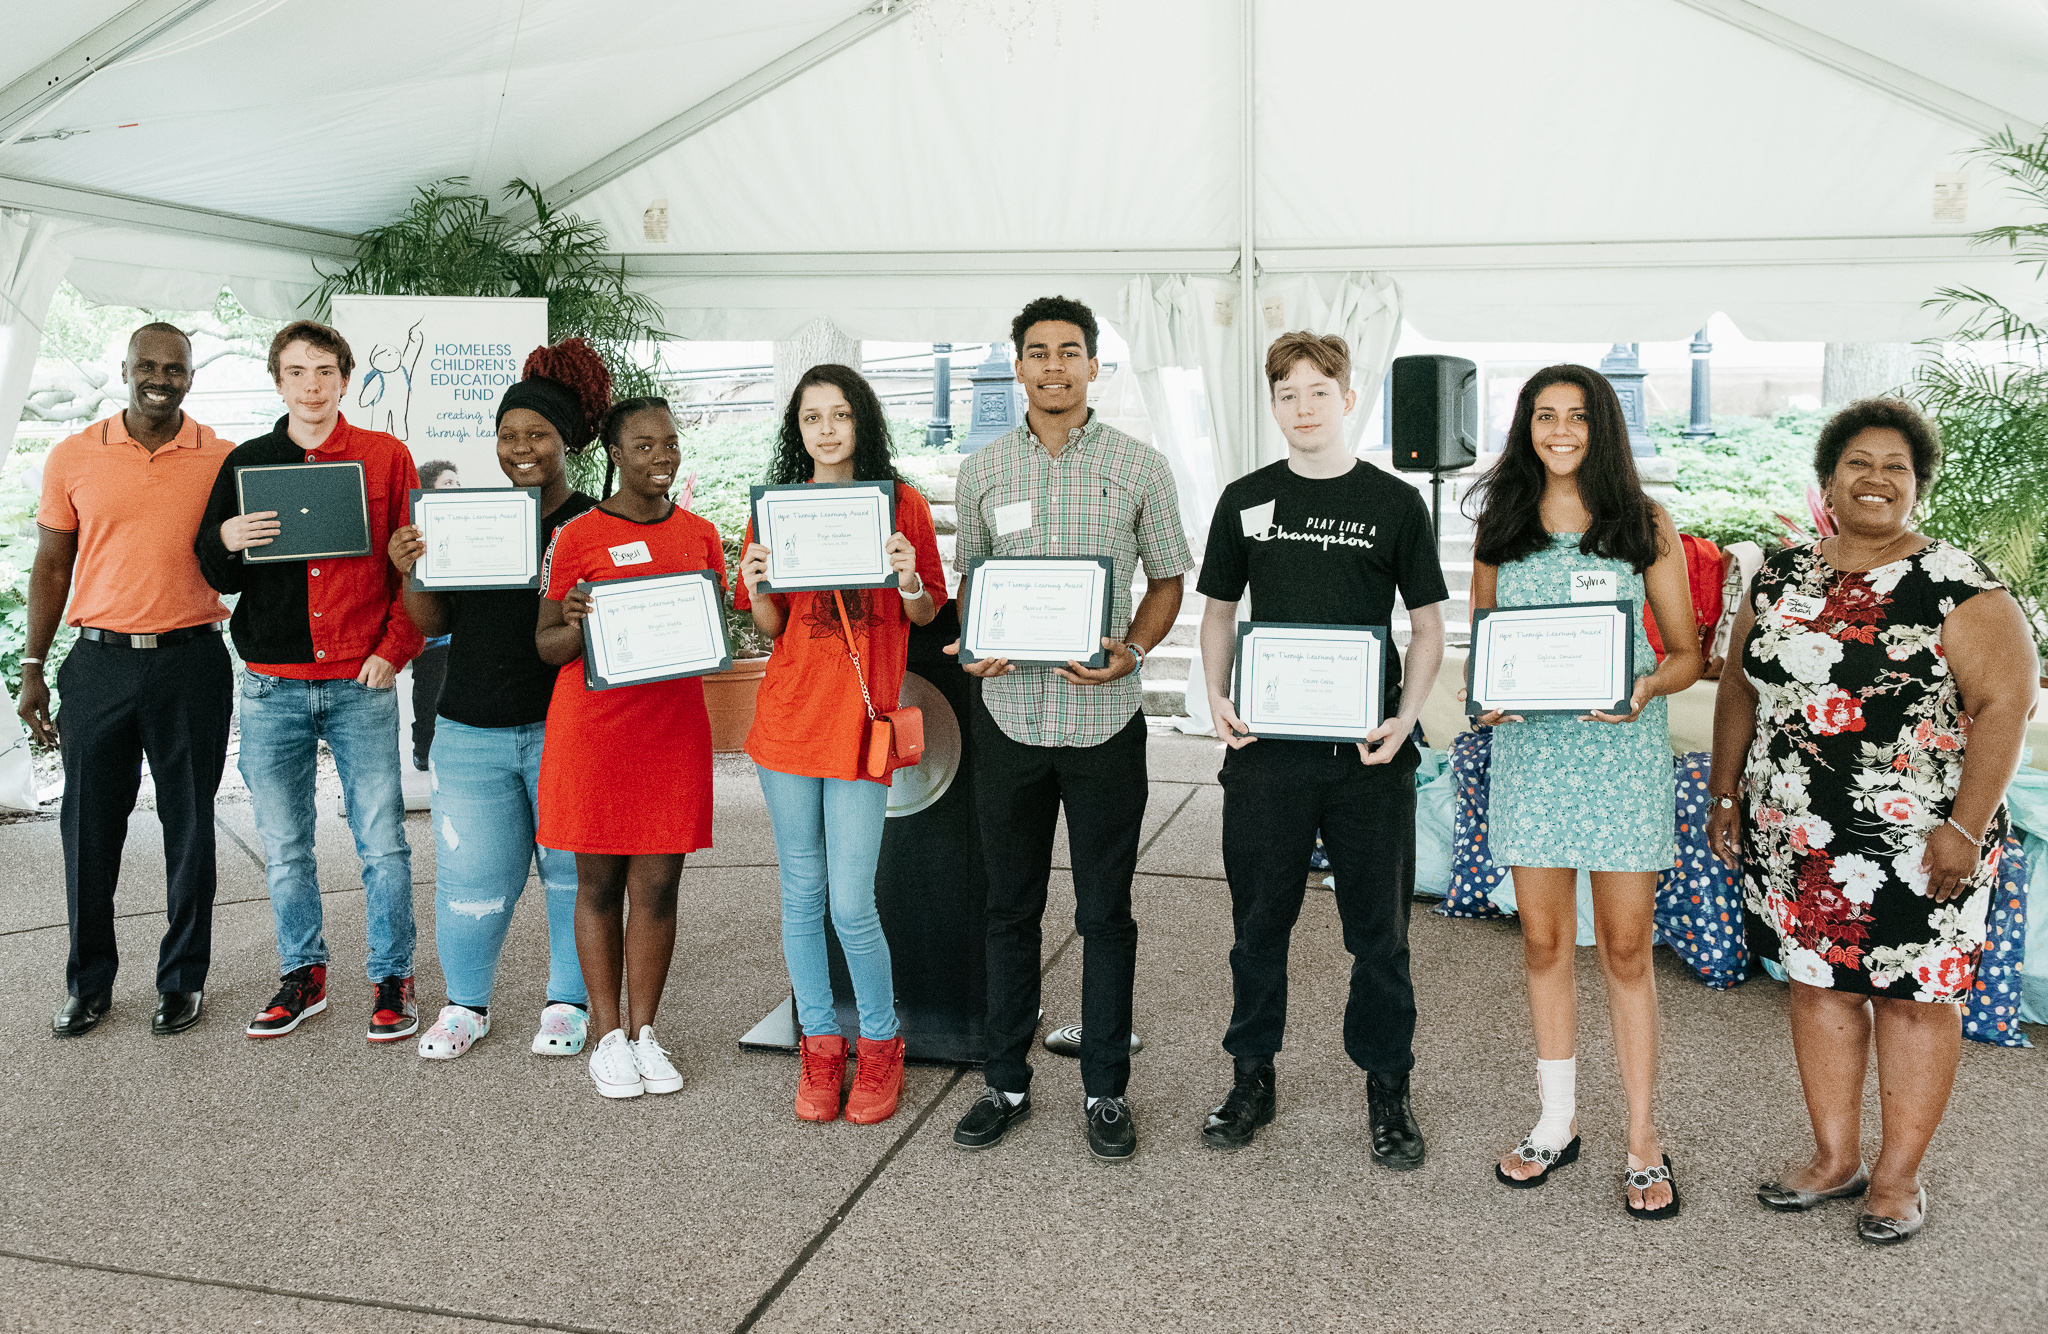 HTLA awardees with their certificates under the outdoor tent at Phipps.